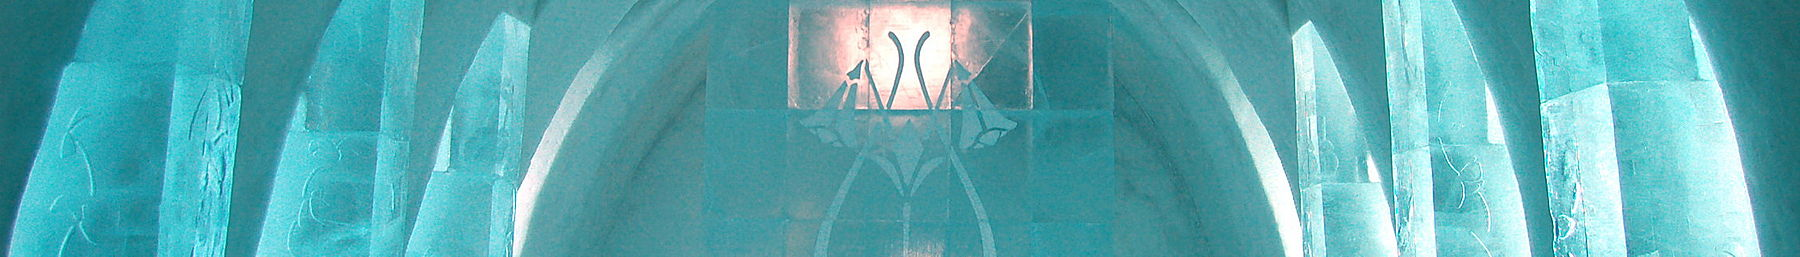 Jukkasjärvi banner Ice Hotel Church.jpg